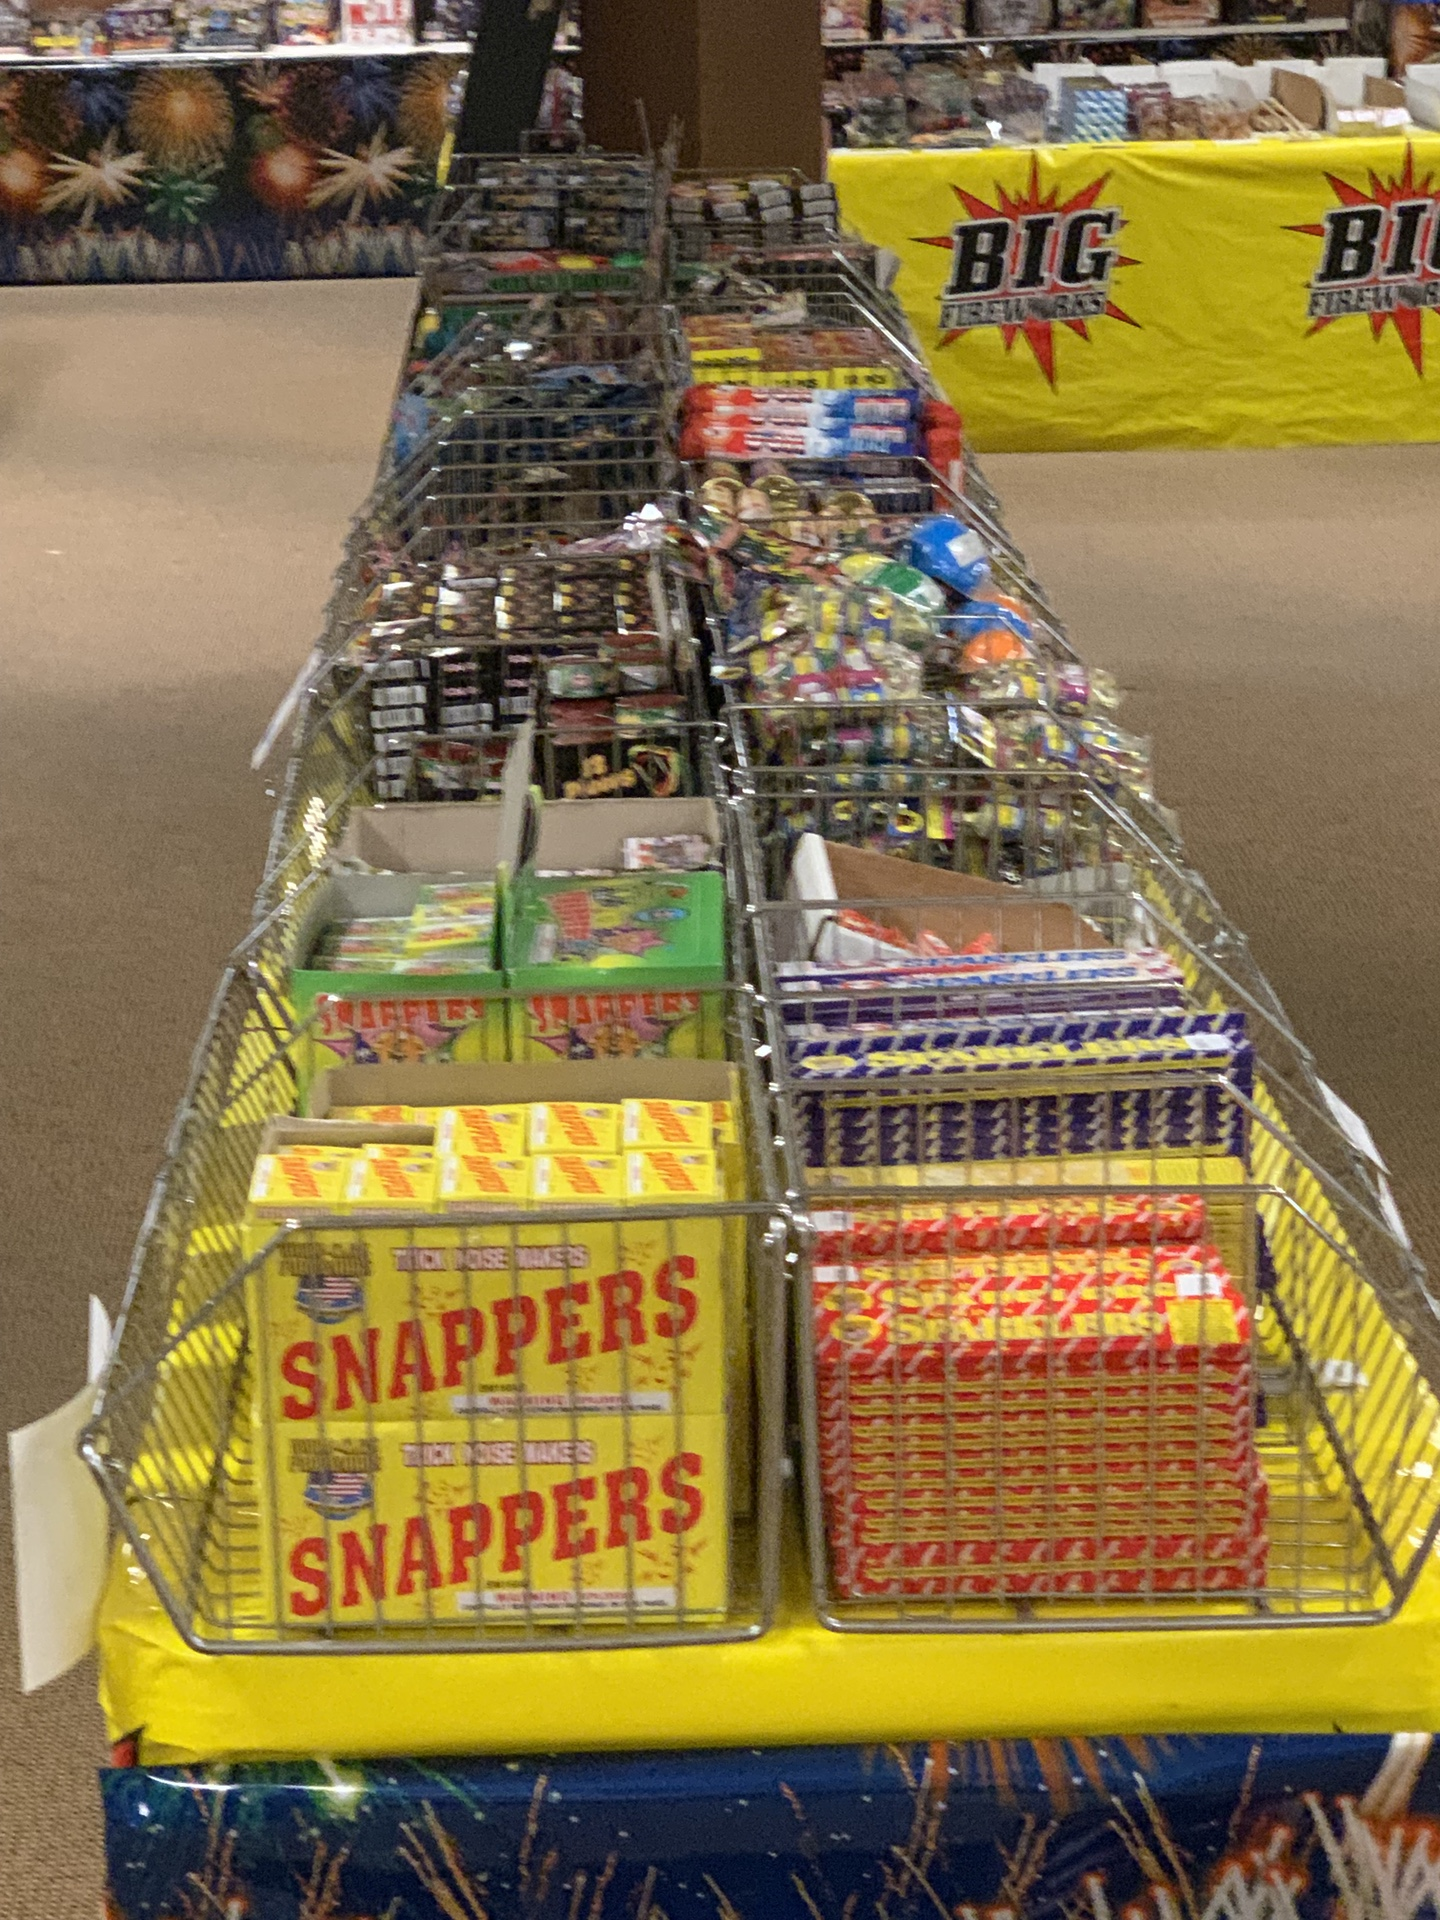 Retail product on the shelves at Indy Fireworks